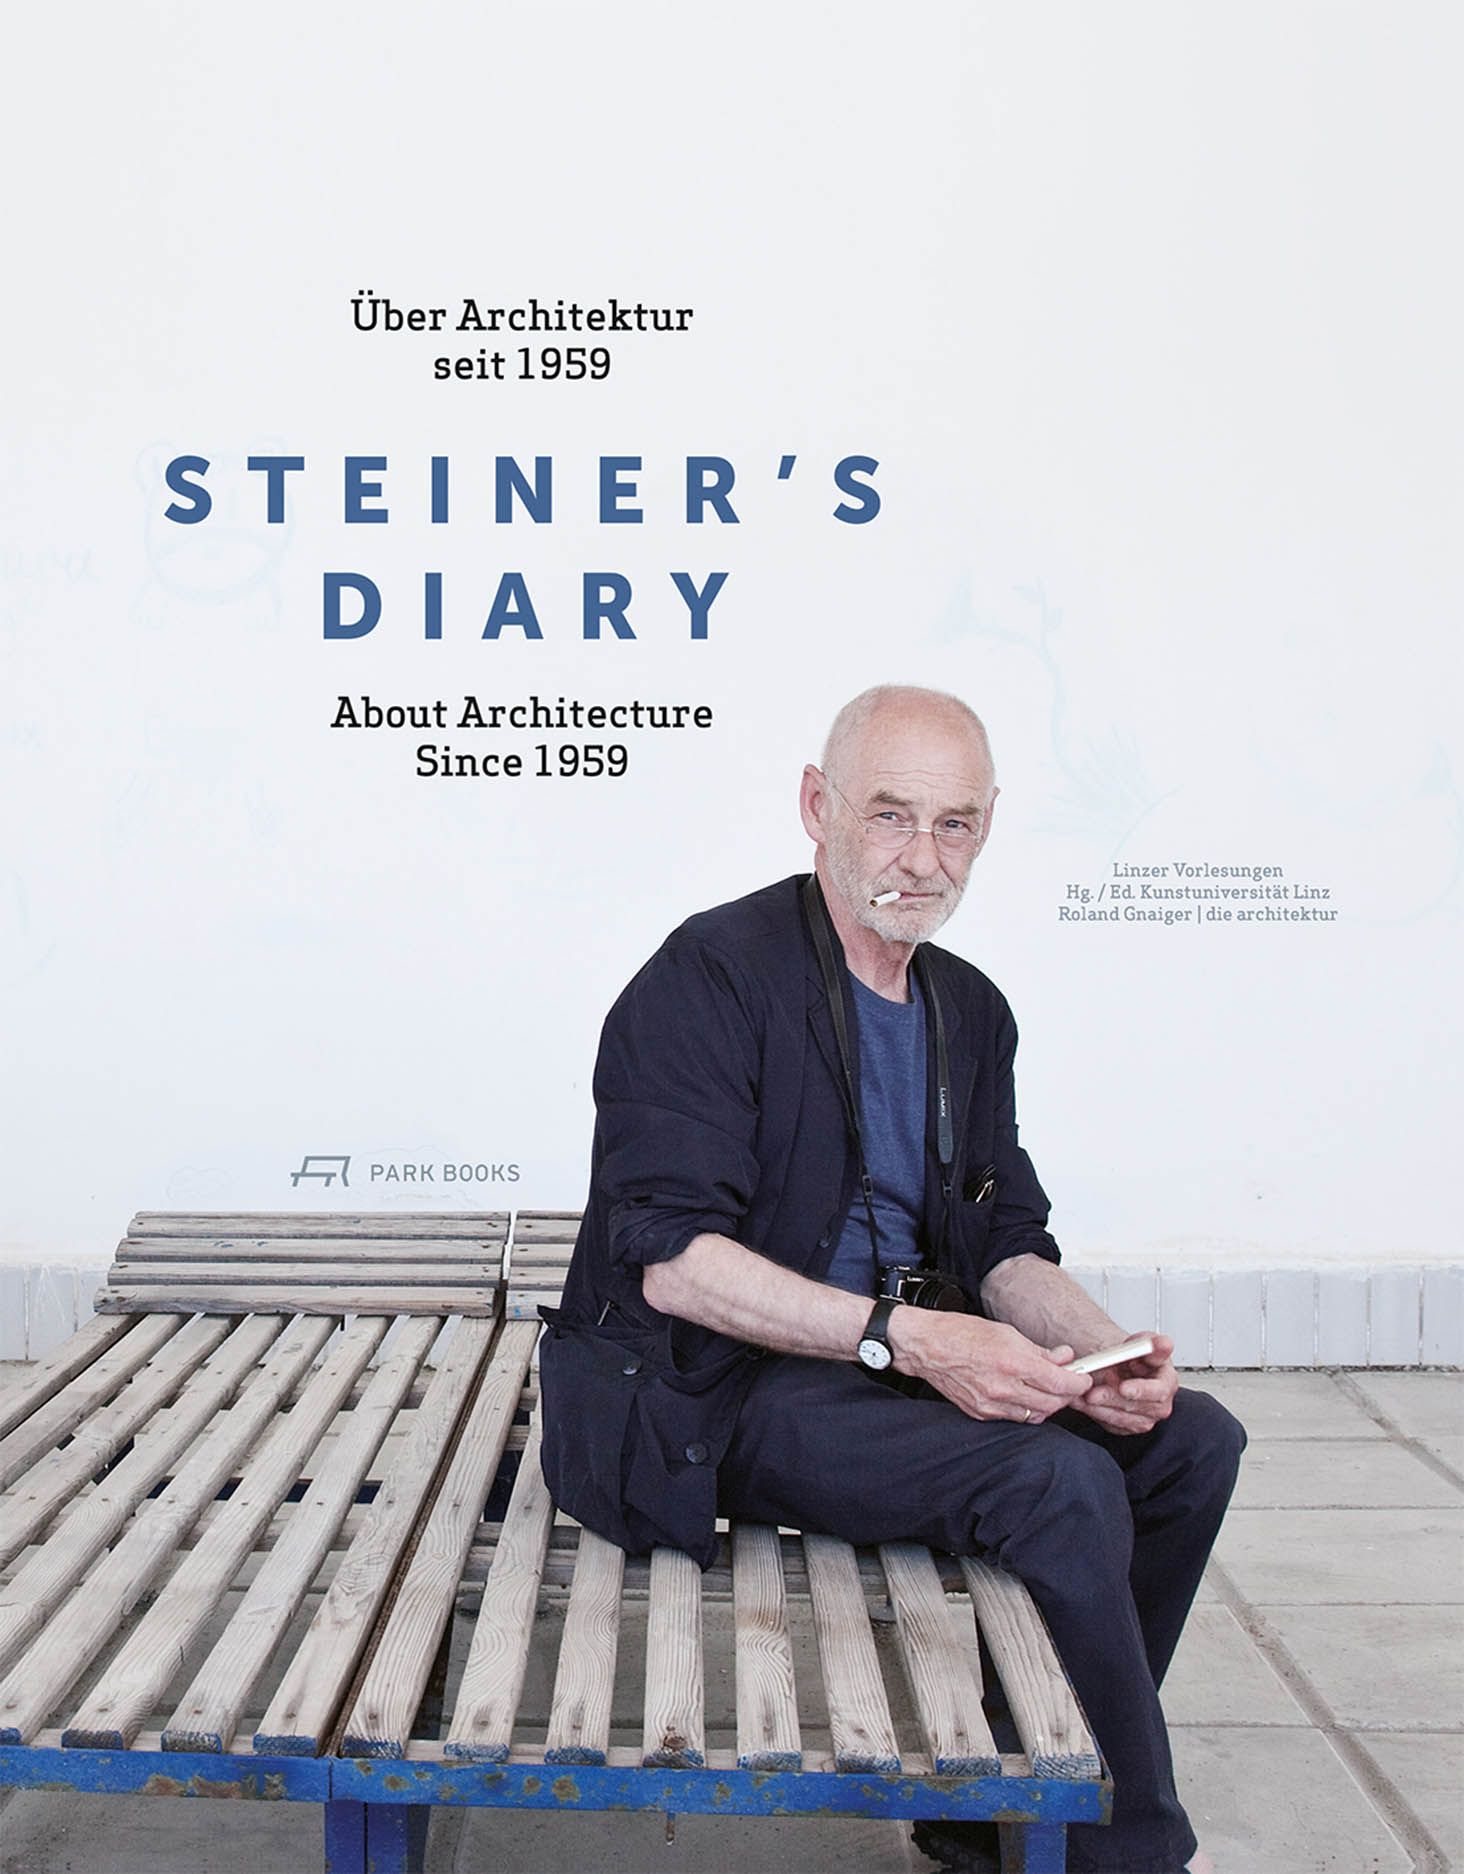 Steiner's Diary: On Architecture since 1959